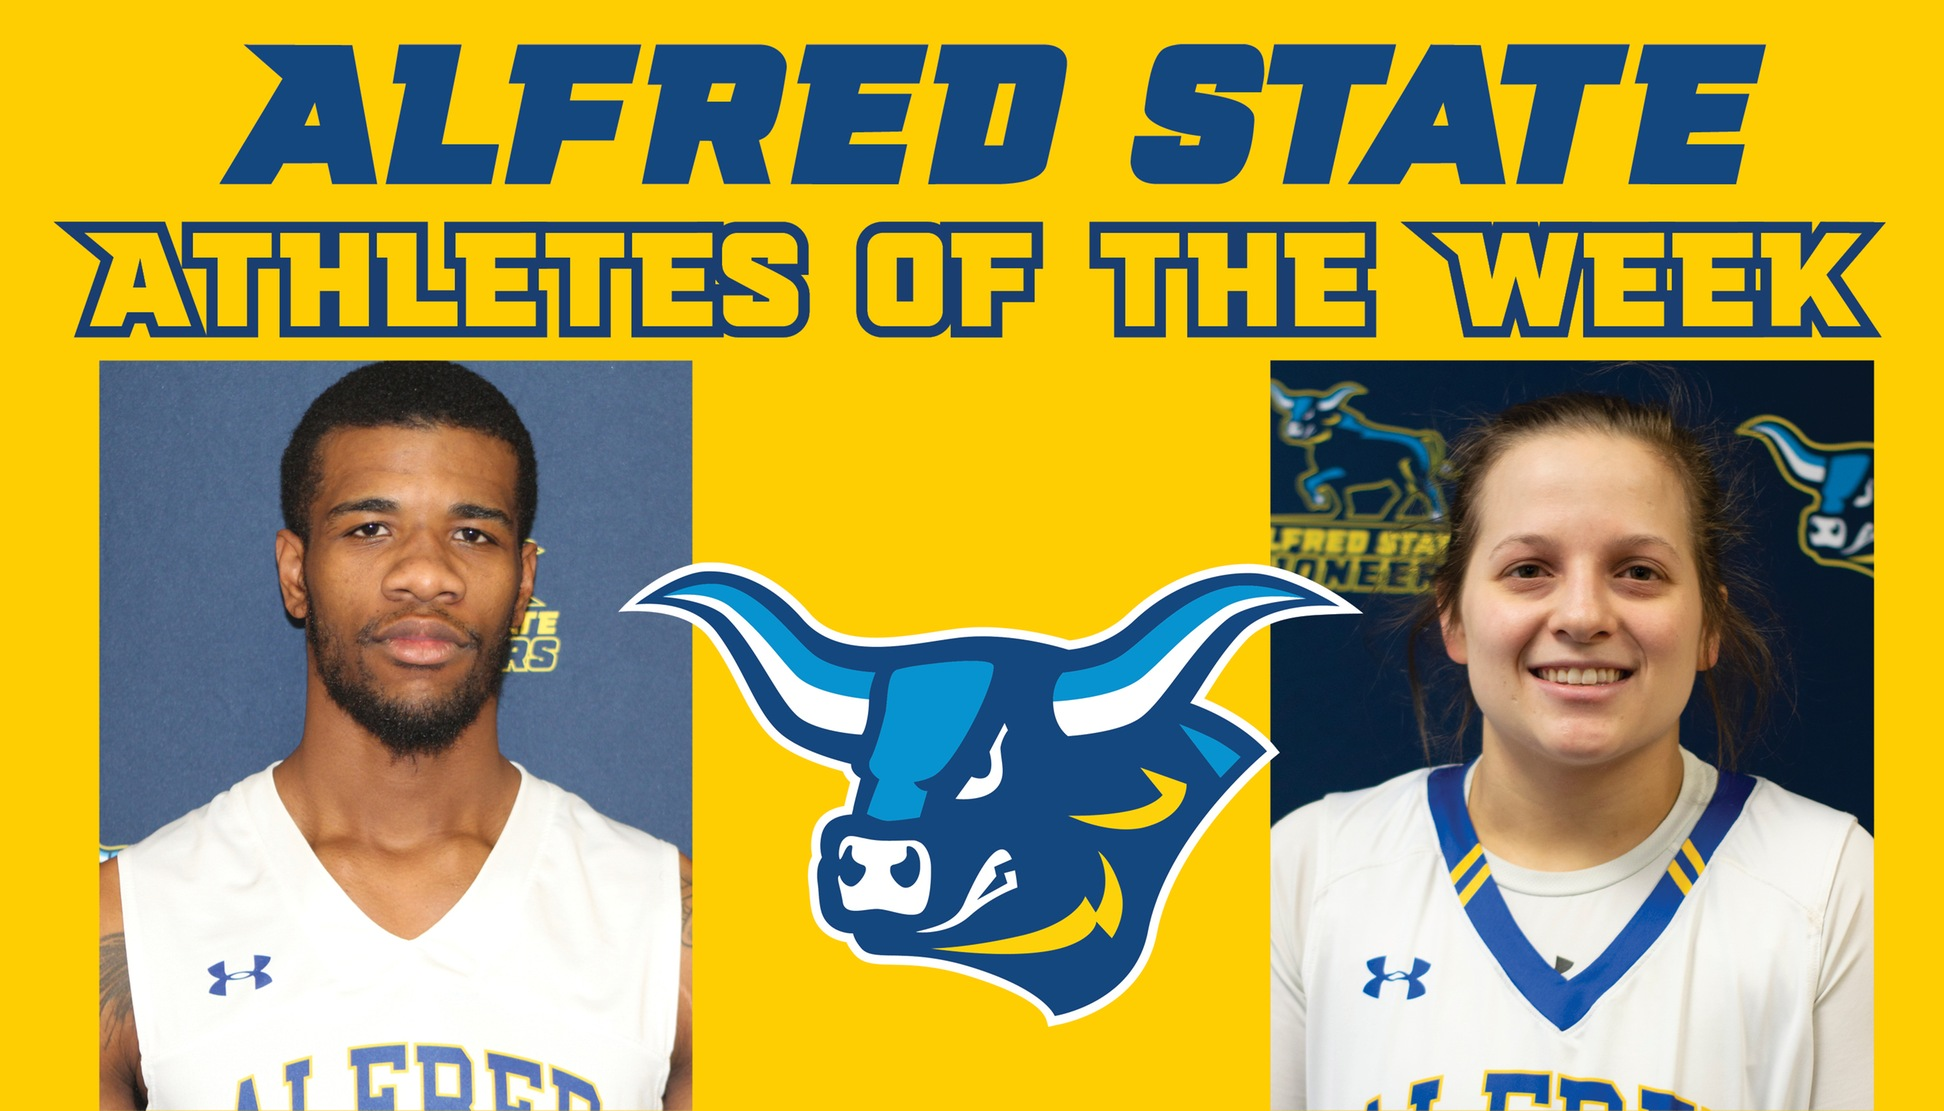 Ray Anderson and Taj Lewis named athletes of the week.